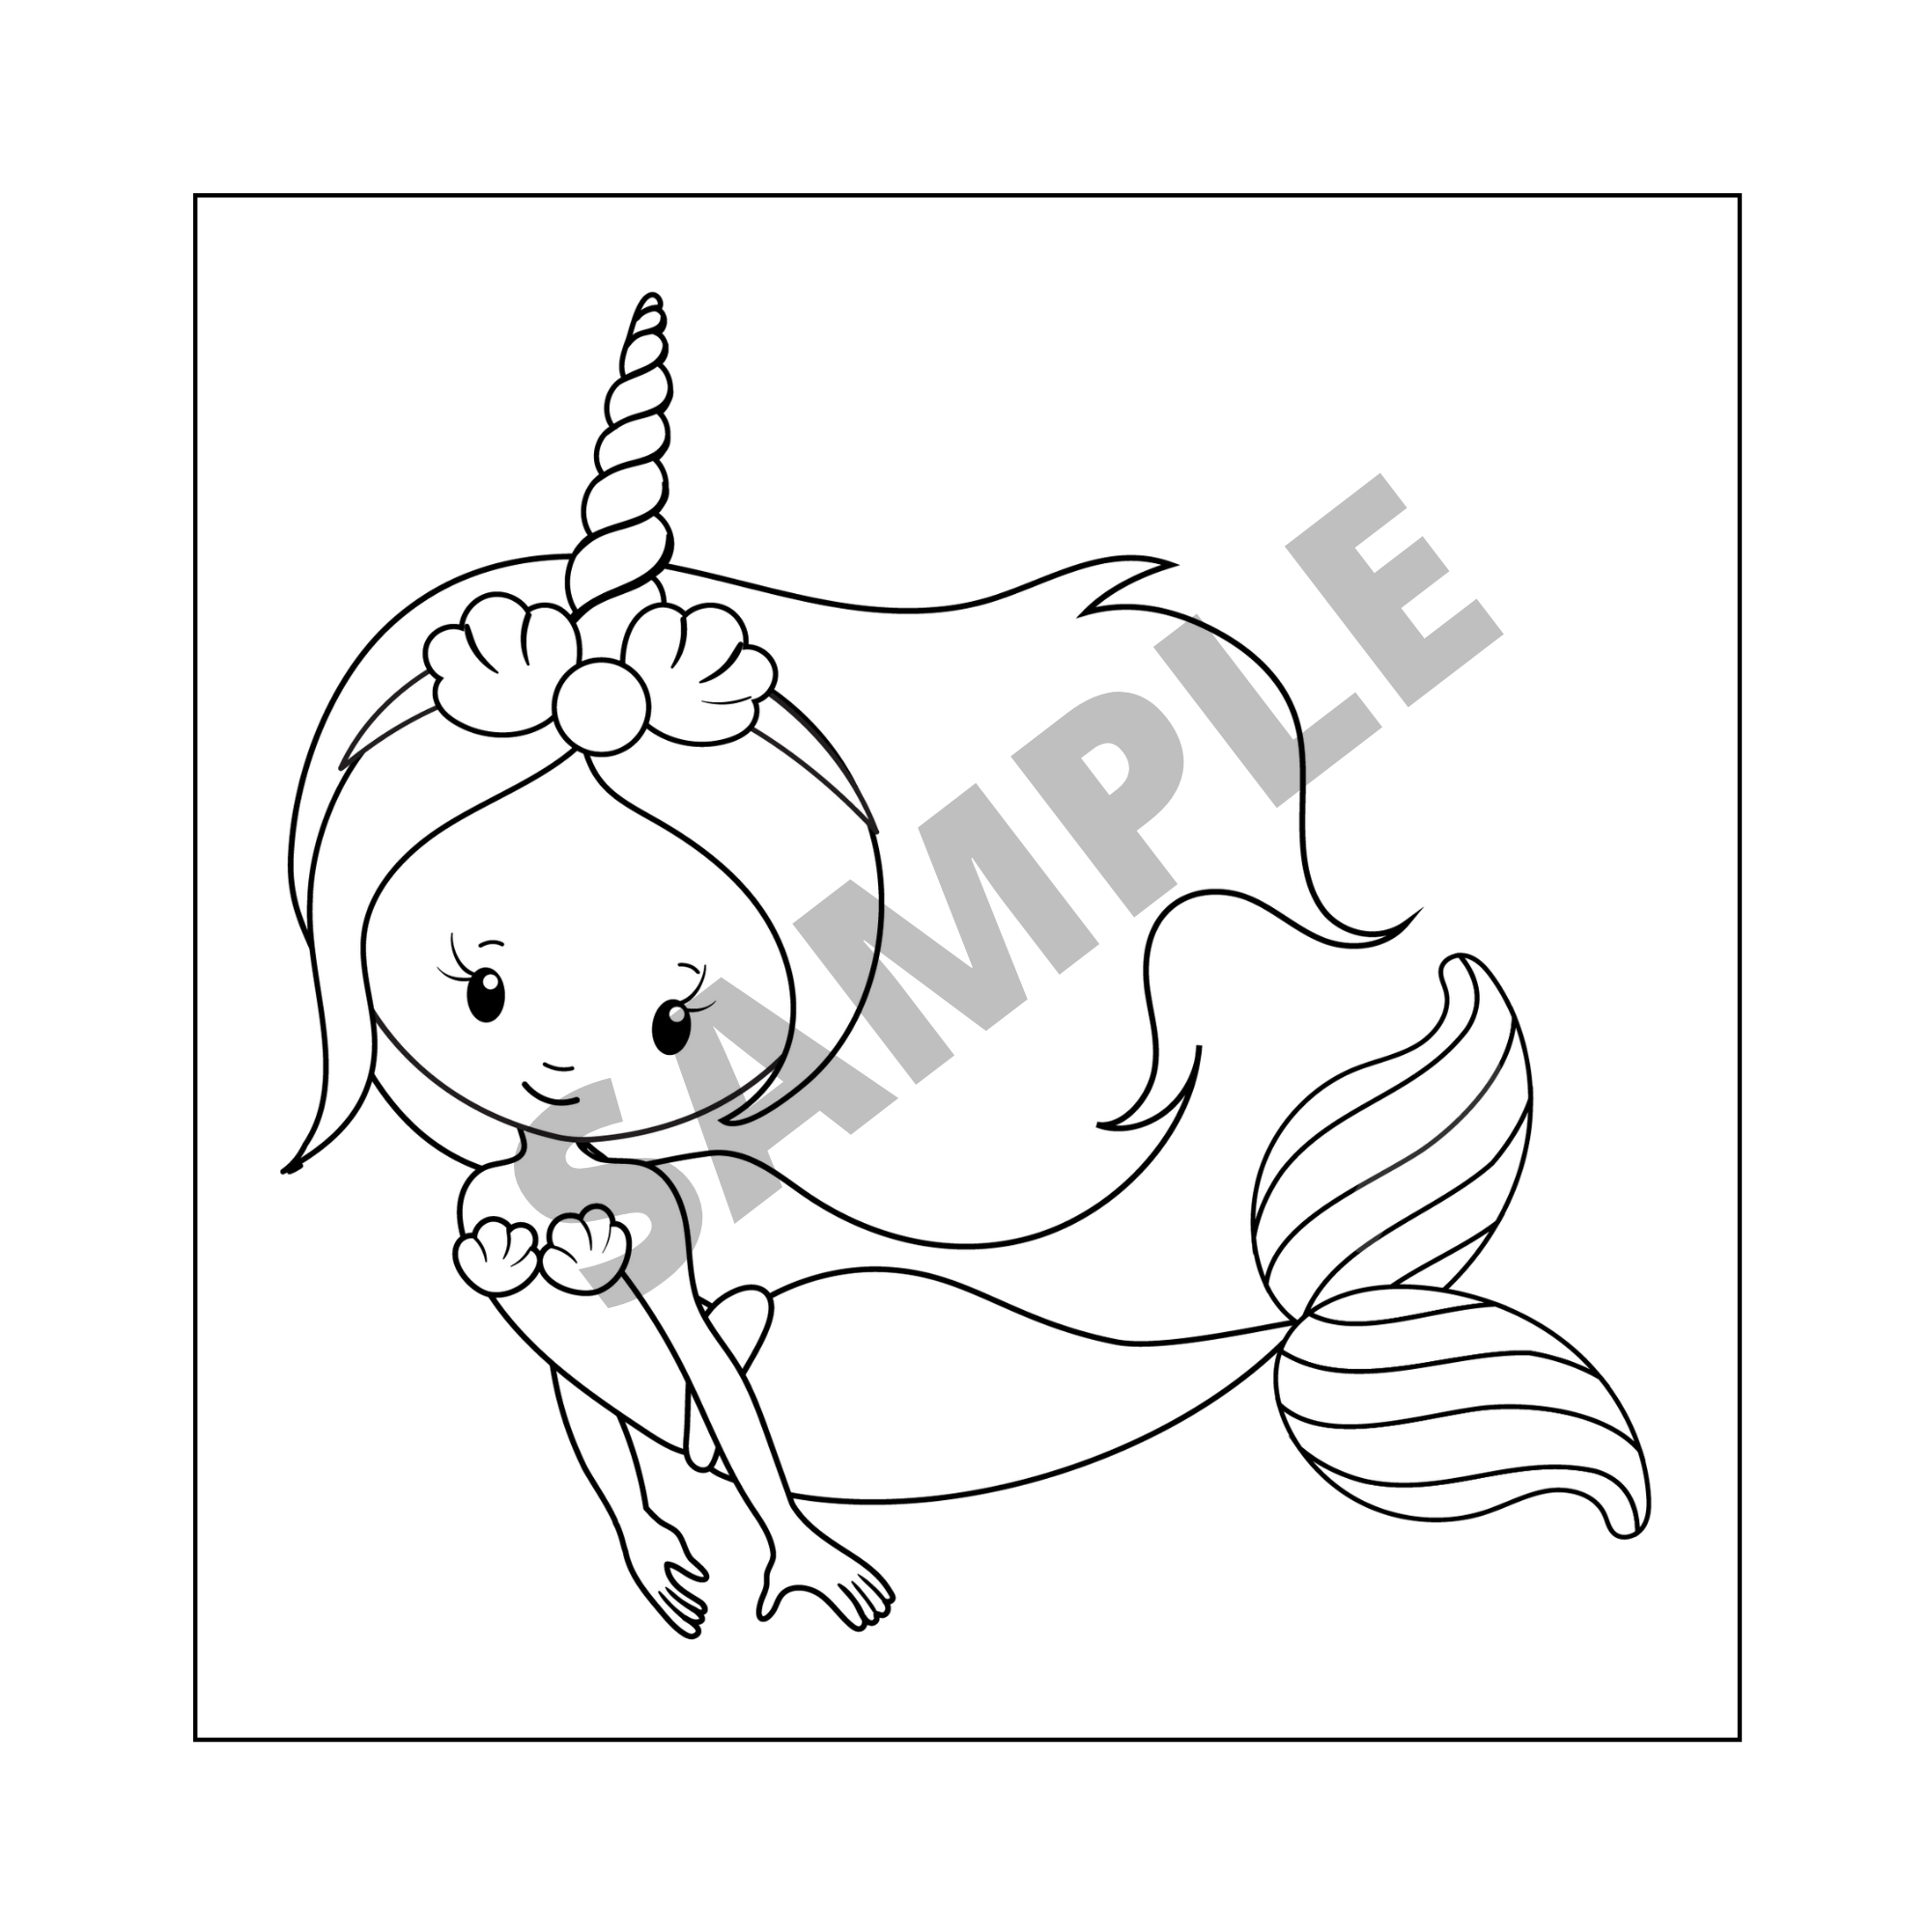 Sea Coloring Pages For Kids Unicorns Mermaids And Other Etsy Mermaid Coloring Pages Coloring Pages Animal Coloring Pages [ 2000 x 2000 Pixel ]